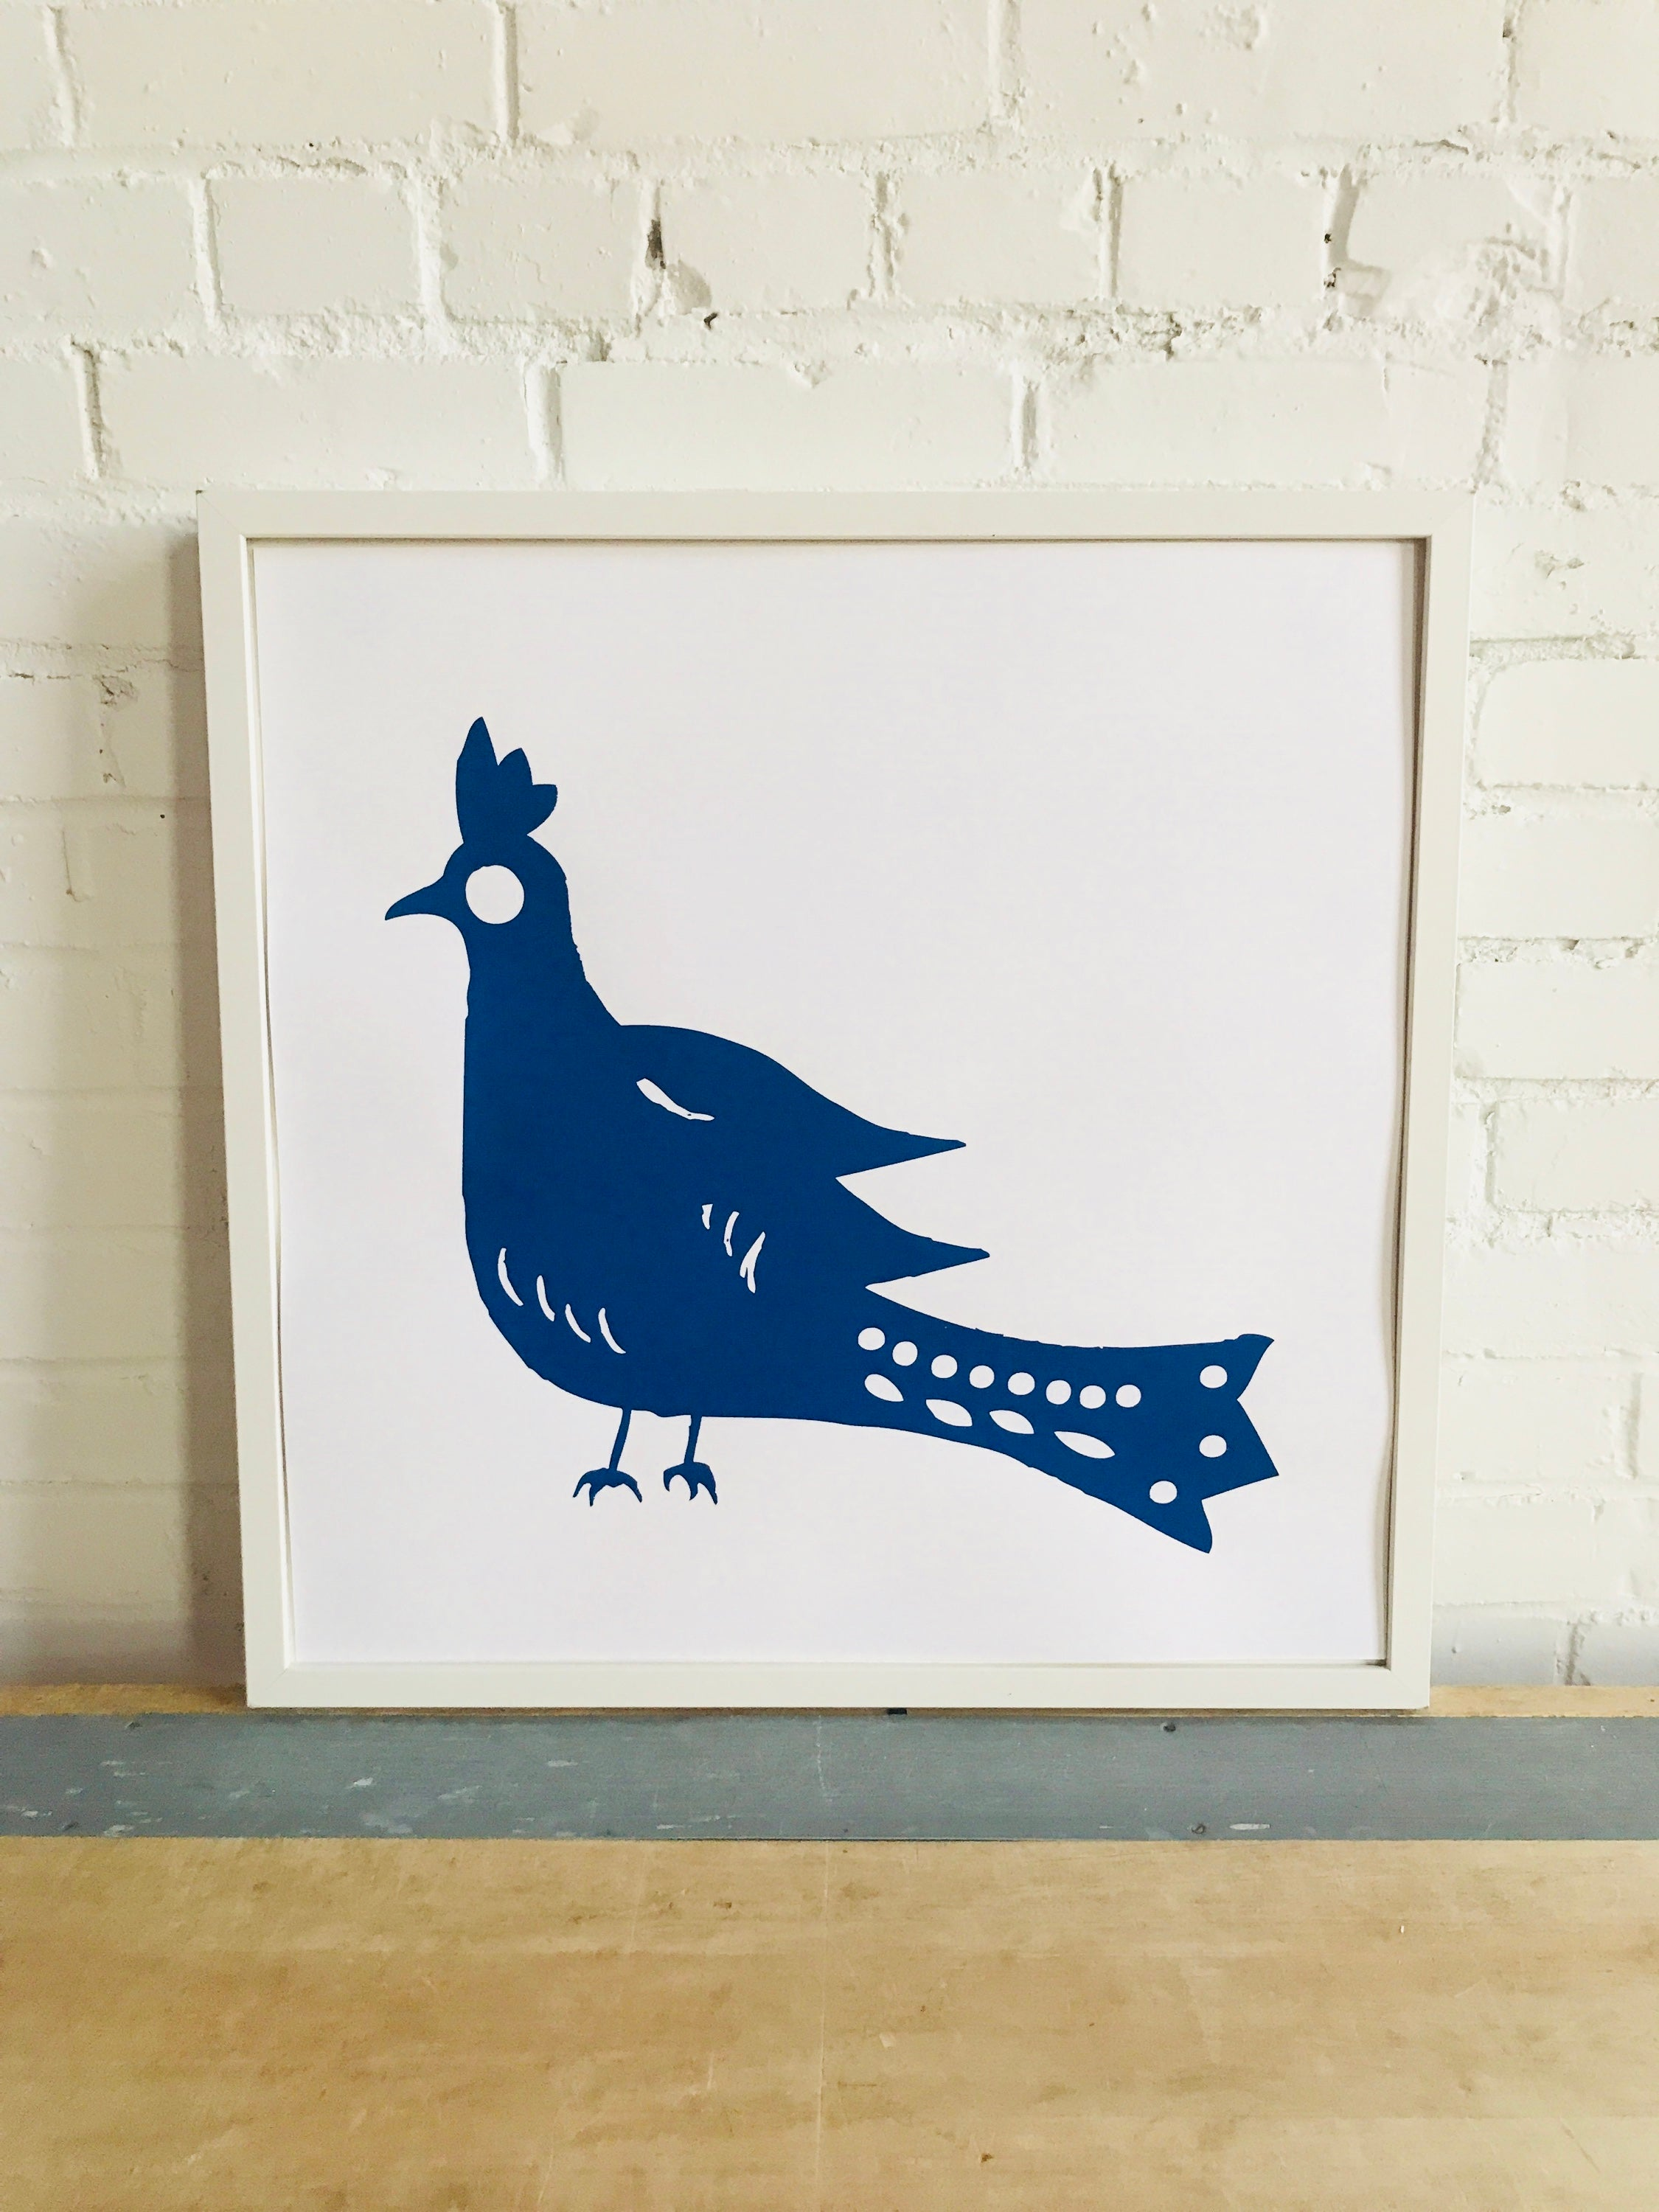 SHIPS NOW! NAVY MATE BIRD PAPER PRINT